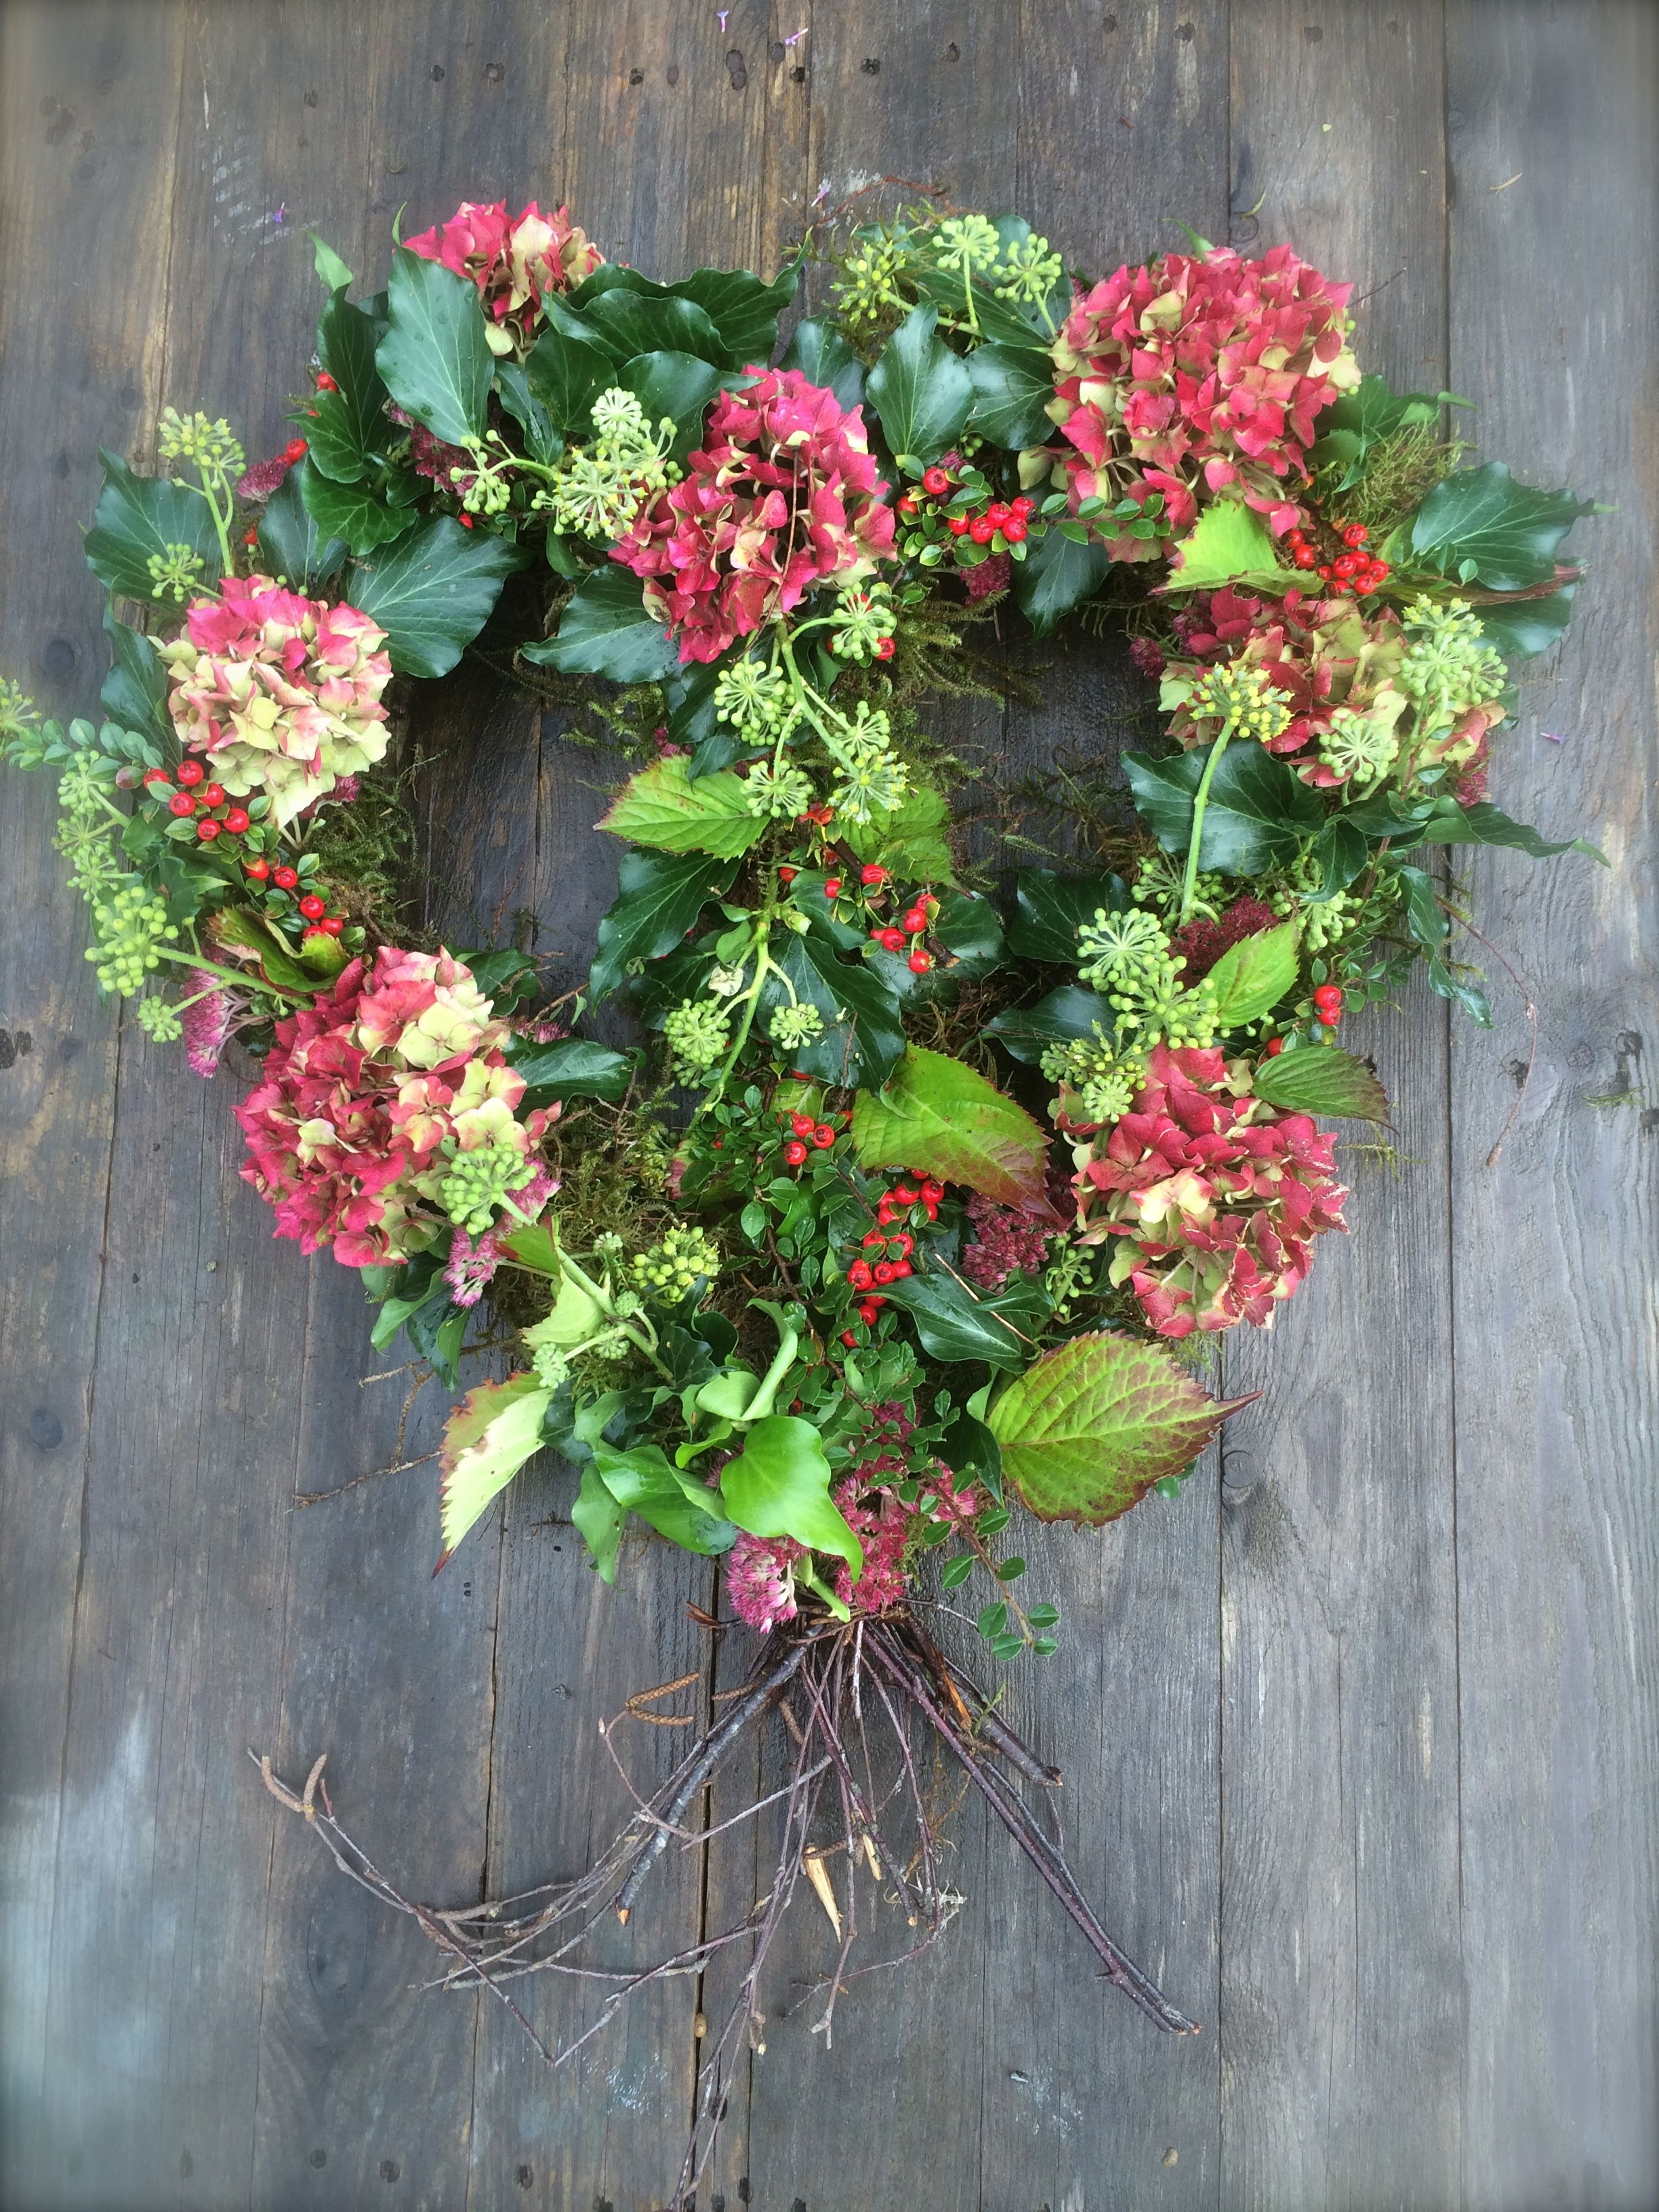 Green funeral flowers heart shaped autumn funeral wreath made on a green funeral flowers heart shaped autumn funeral wreath made on a mossed base of silver birch twigs dressed with ivy flowers hydrangeas and sedums izmirmasajfo